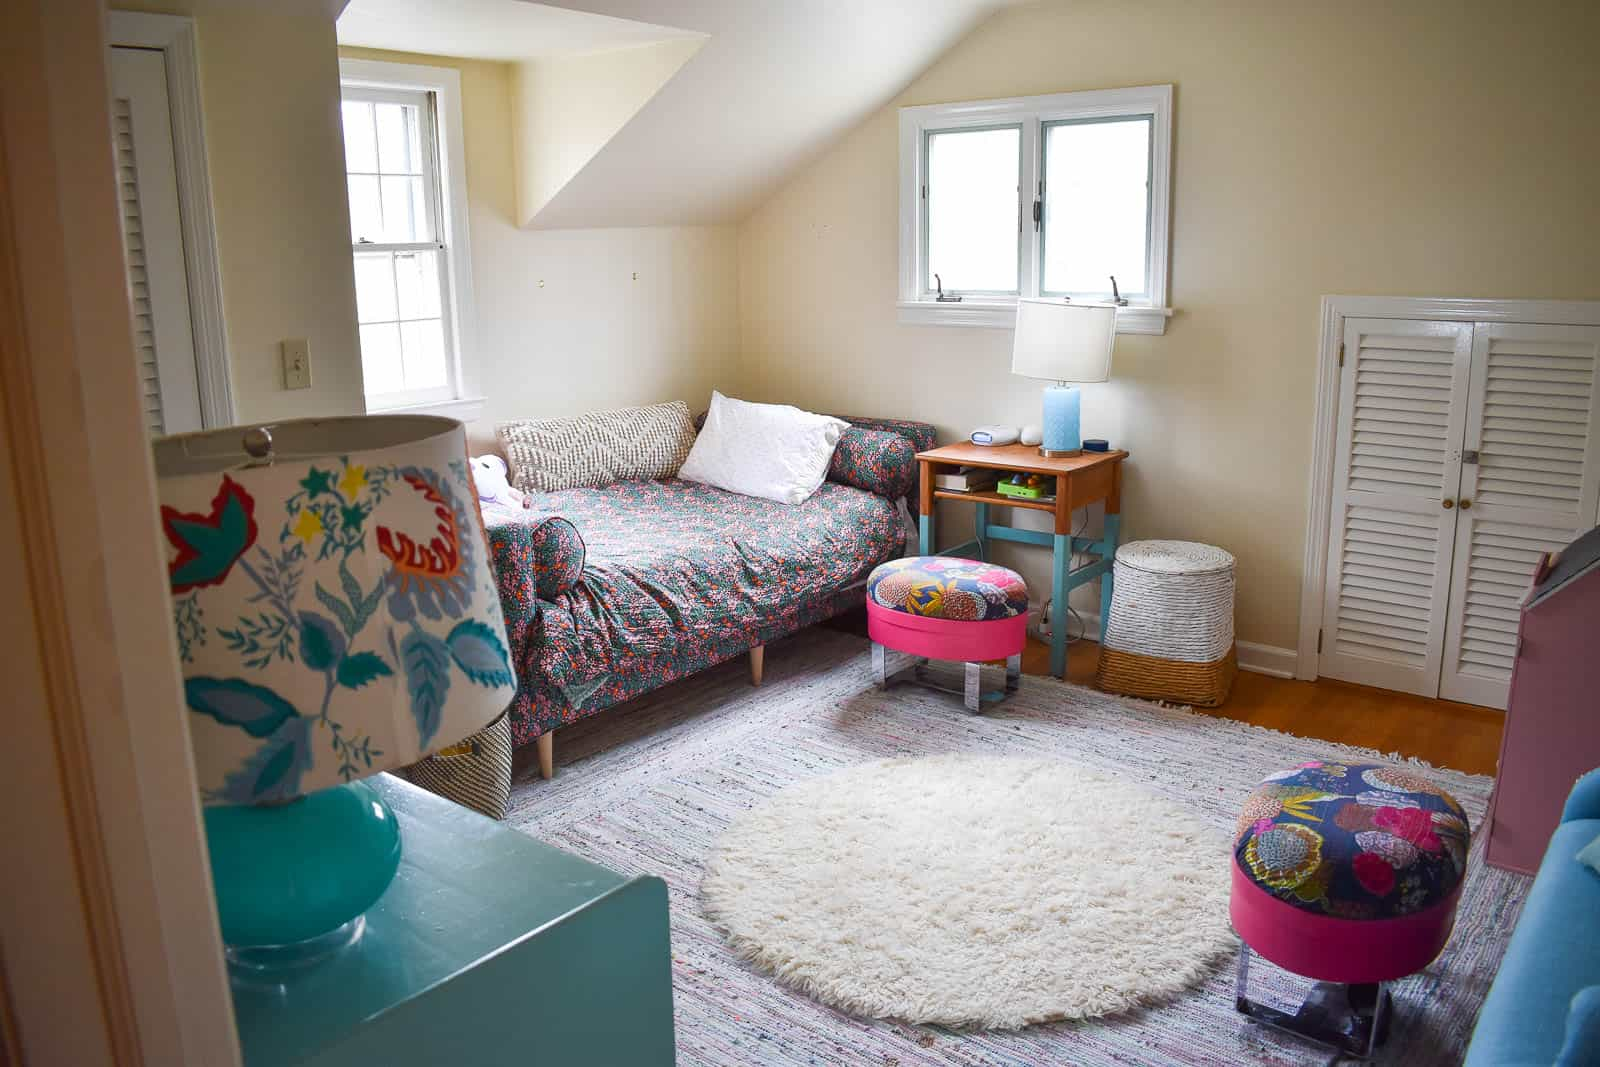 where to place rugs and bedroom furniture